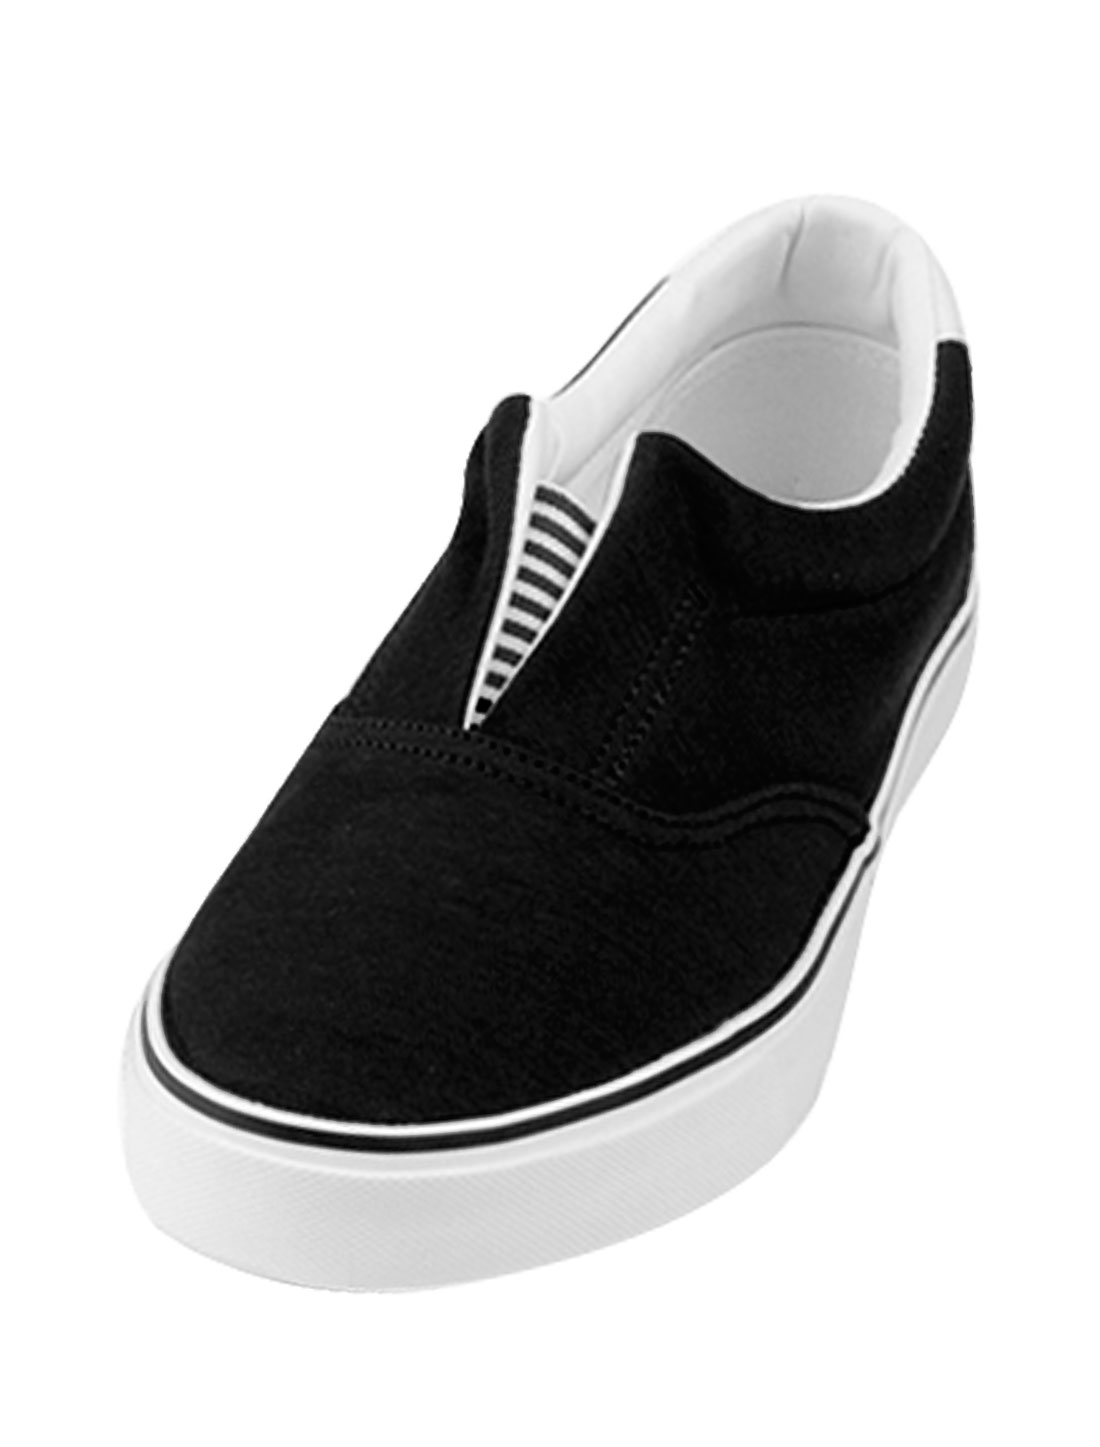 Mens Ladies Black Round Toe Casual Canvas Shoes US Size Mens 8.5/Women 1O.5